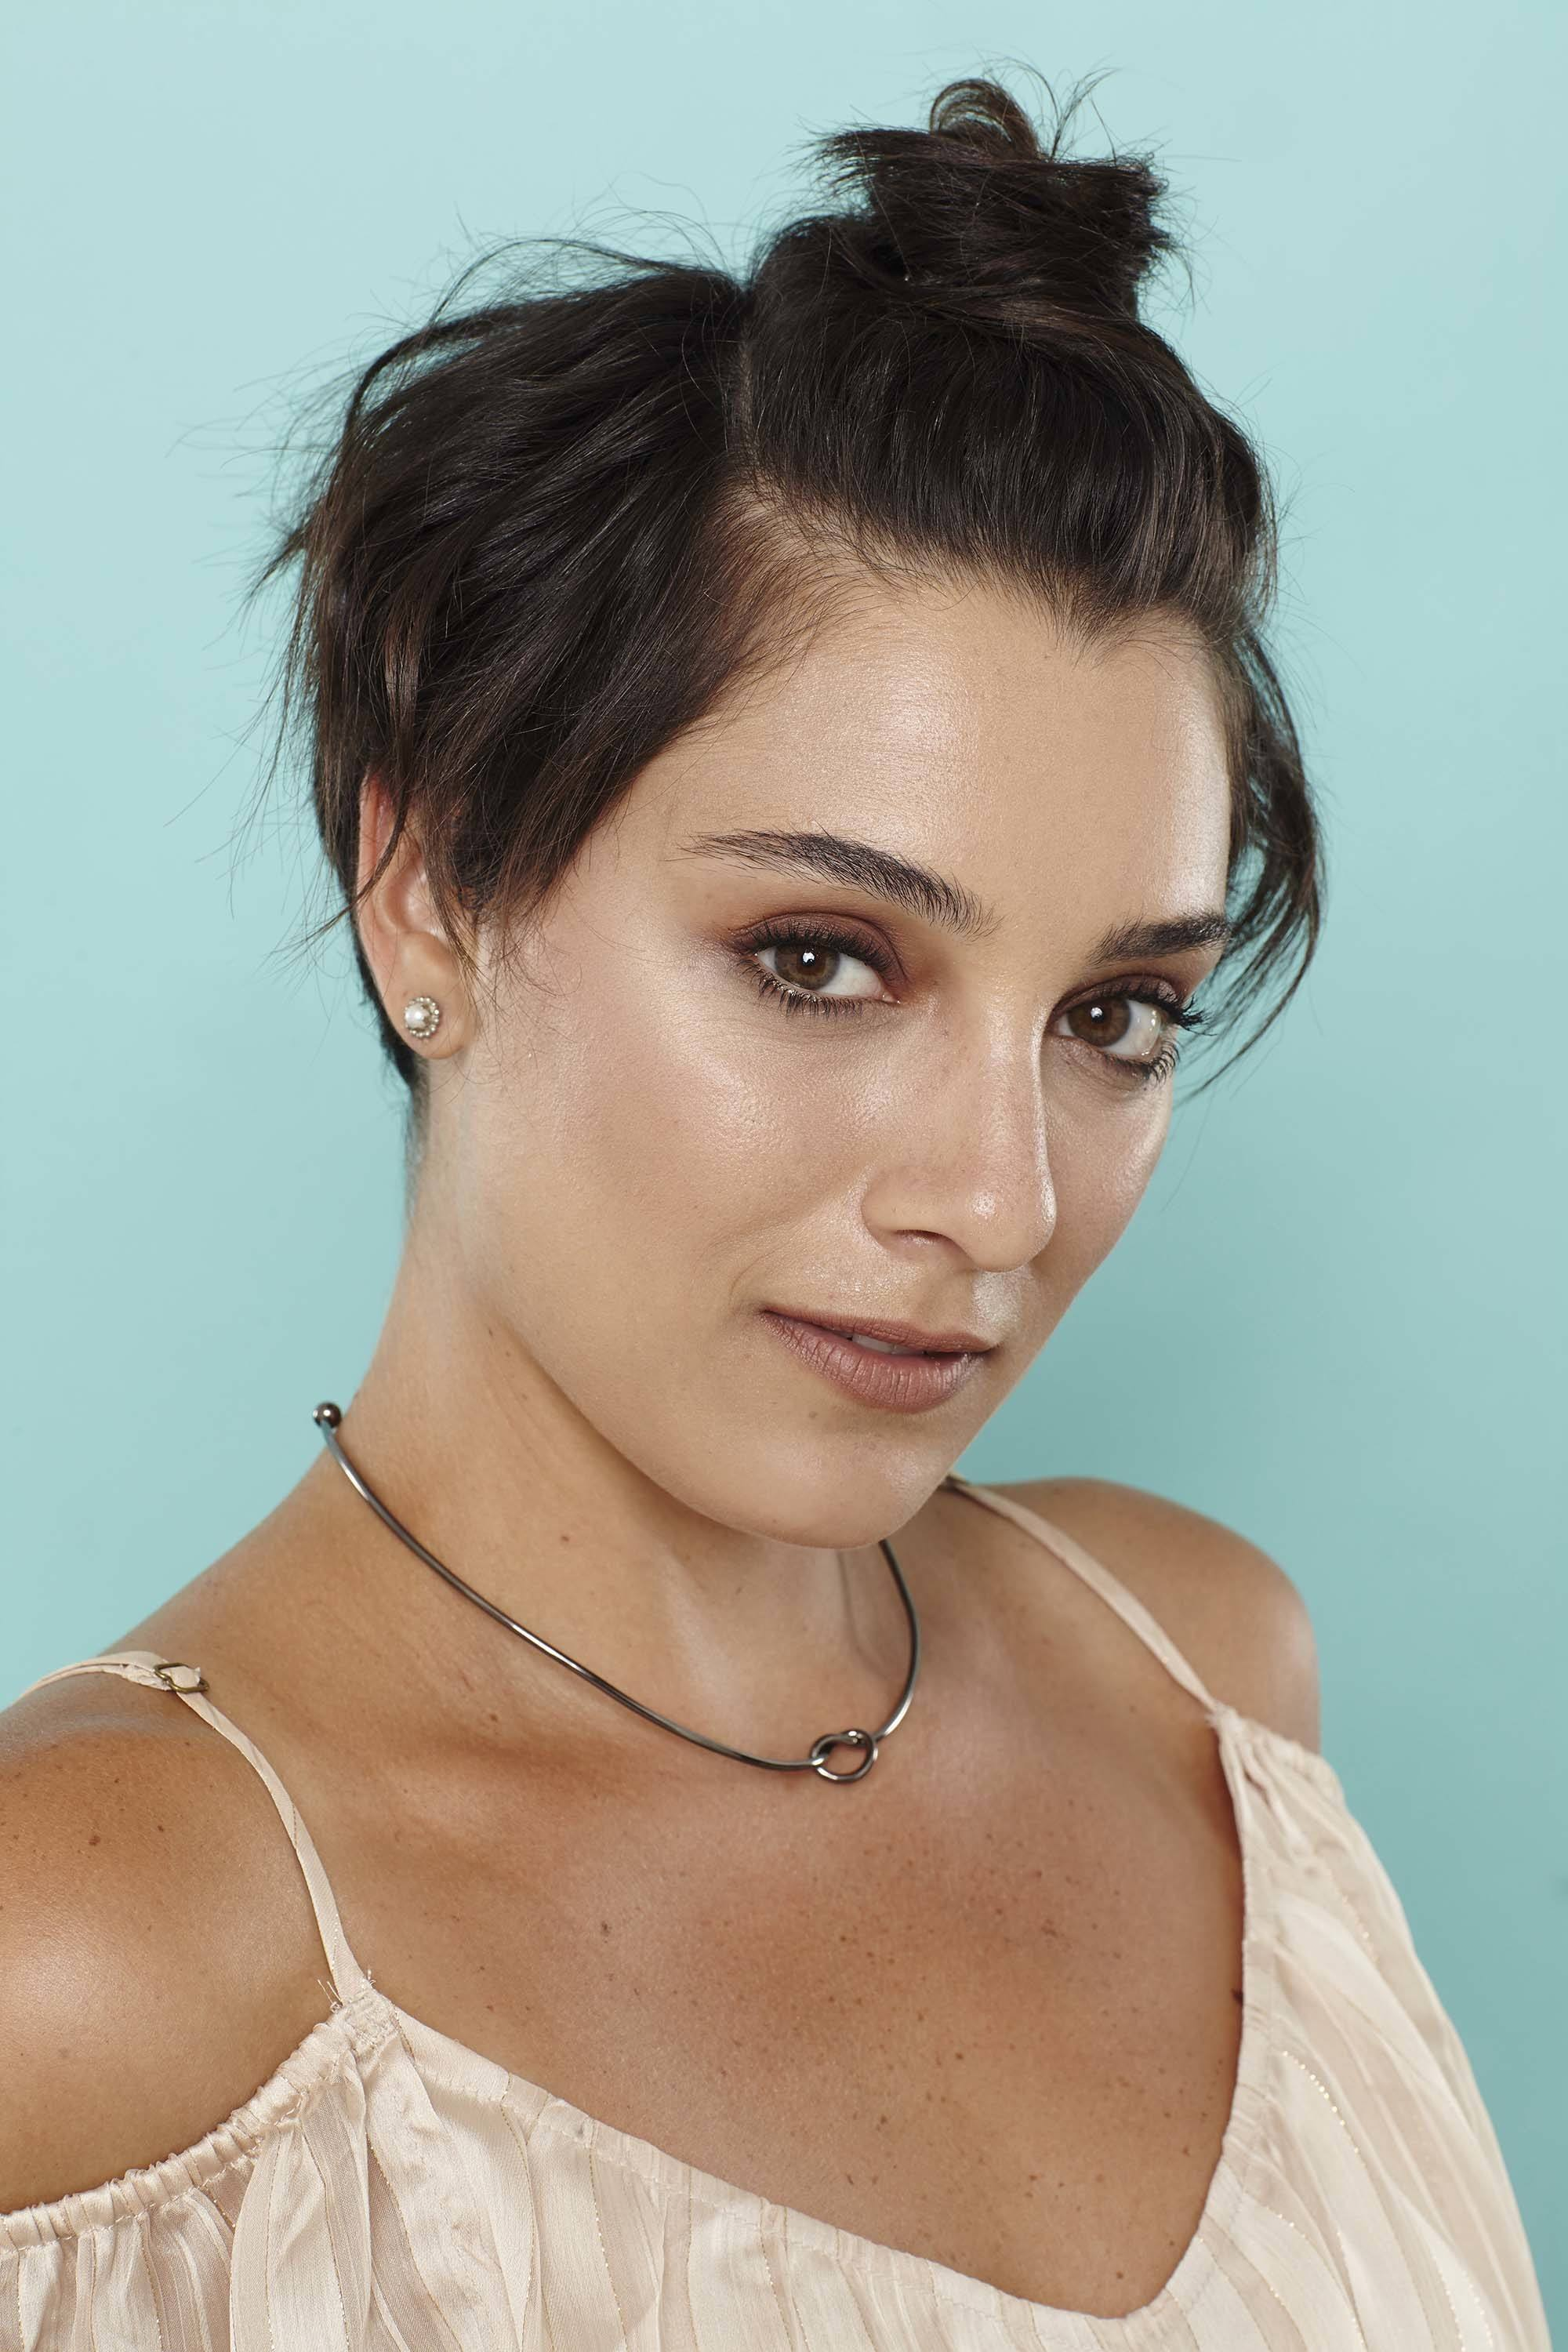 Short summer hairstyles - dark brown pixie crop with top bun